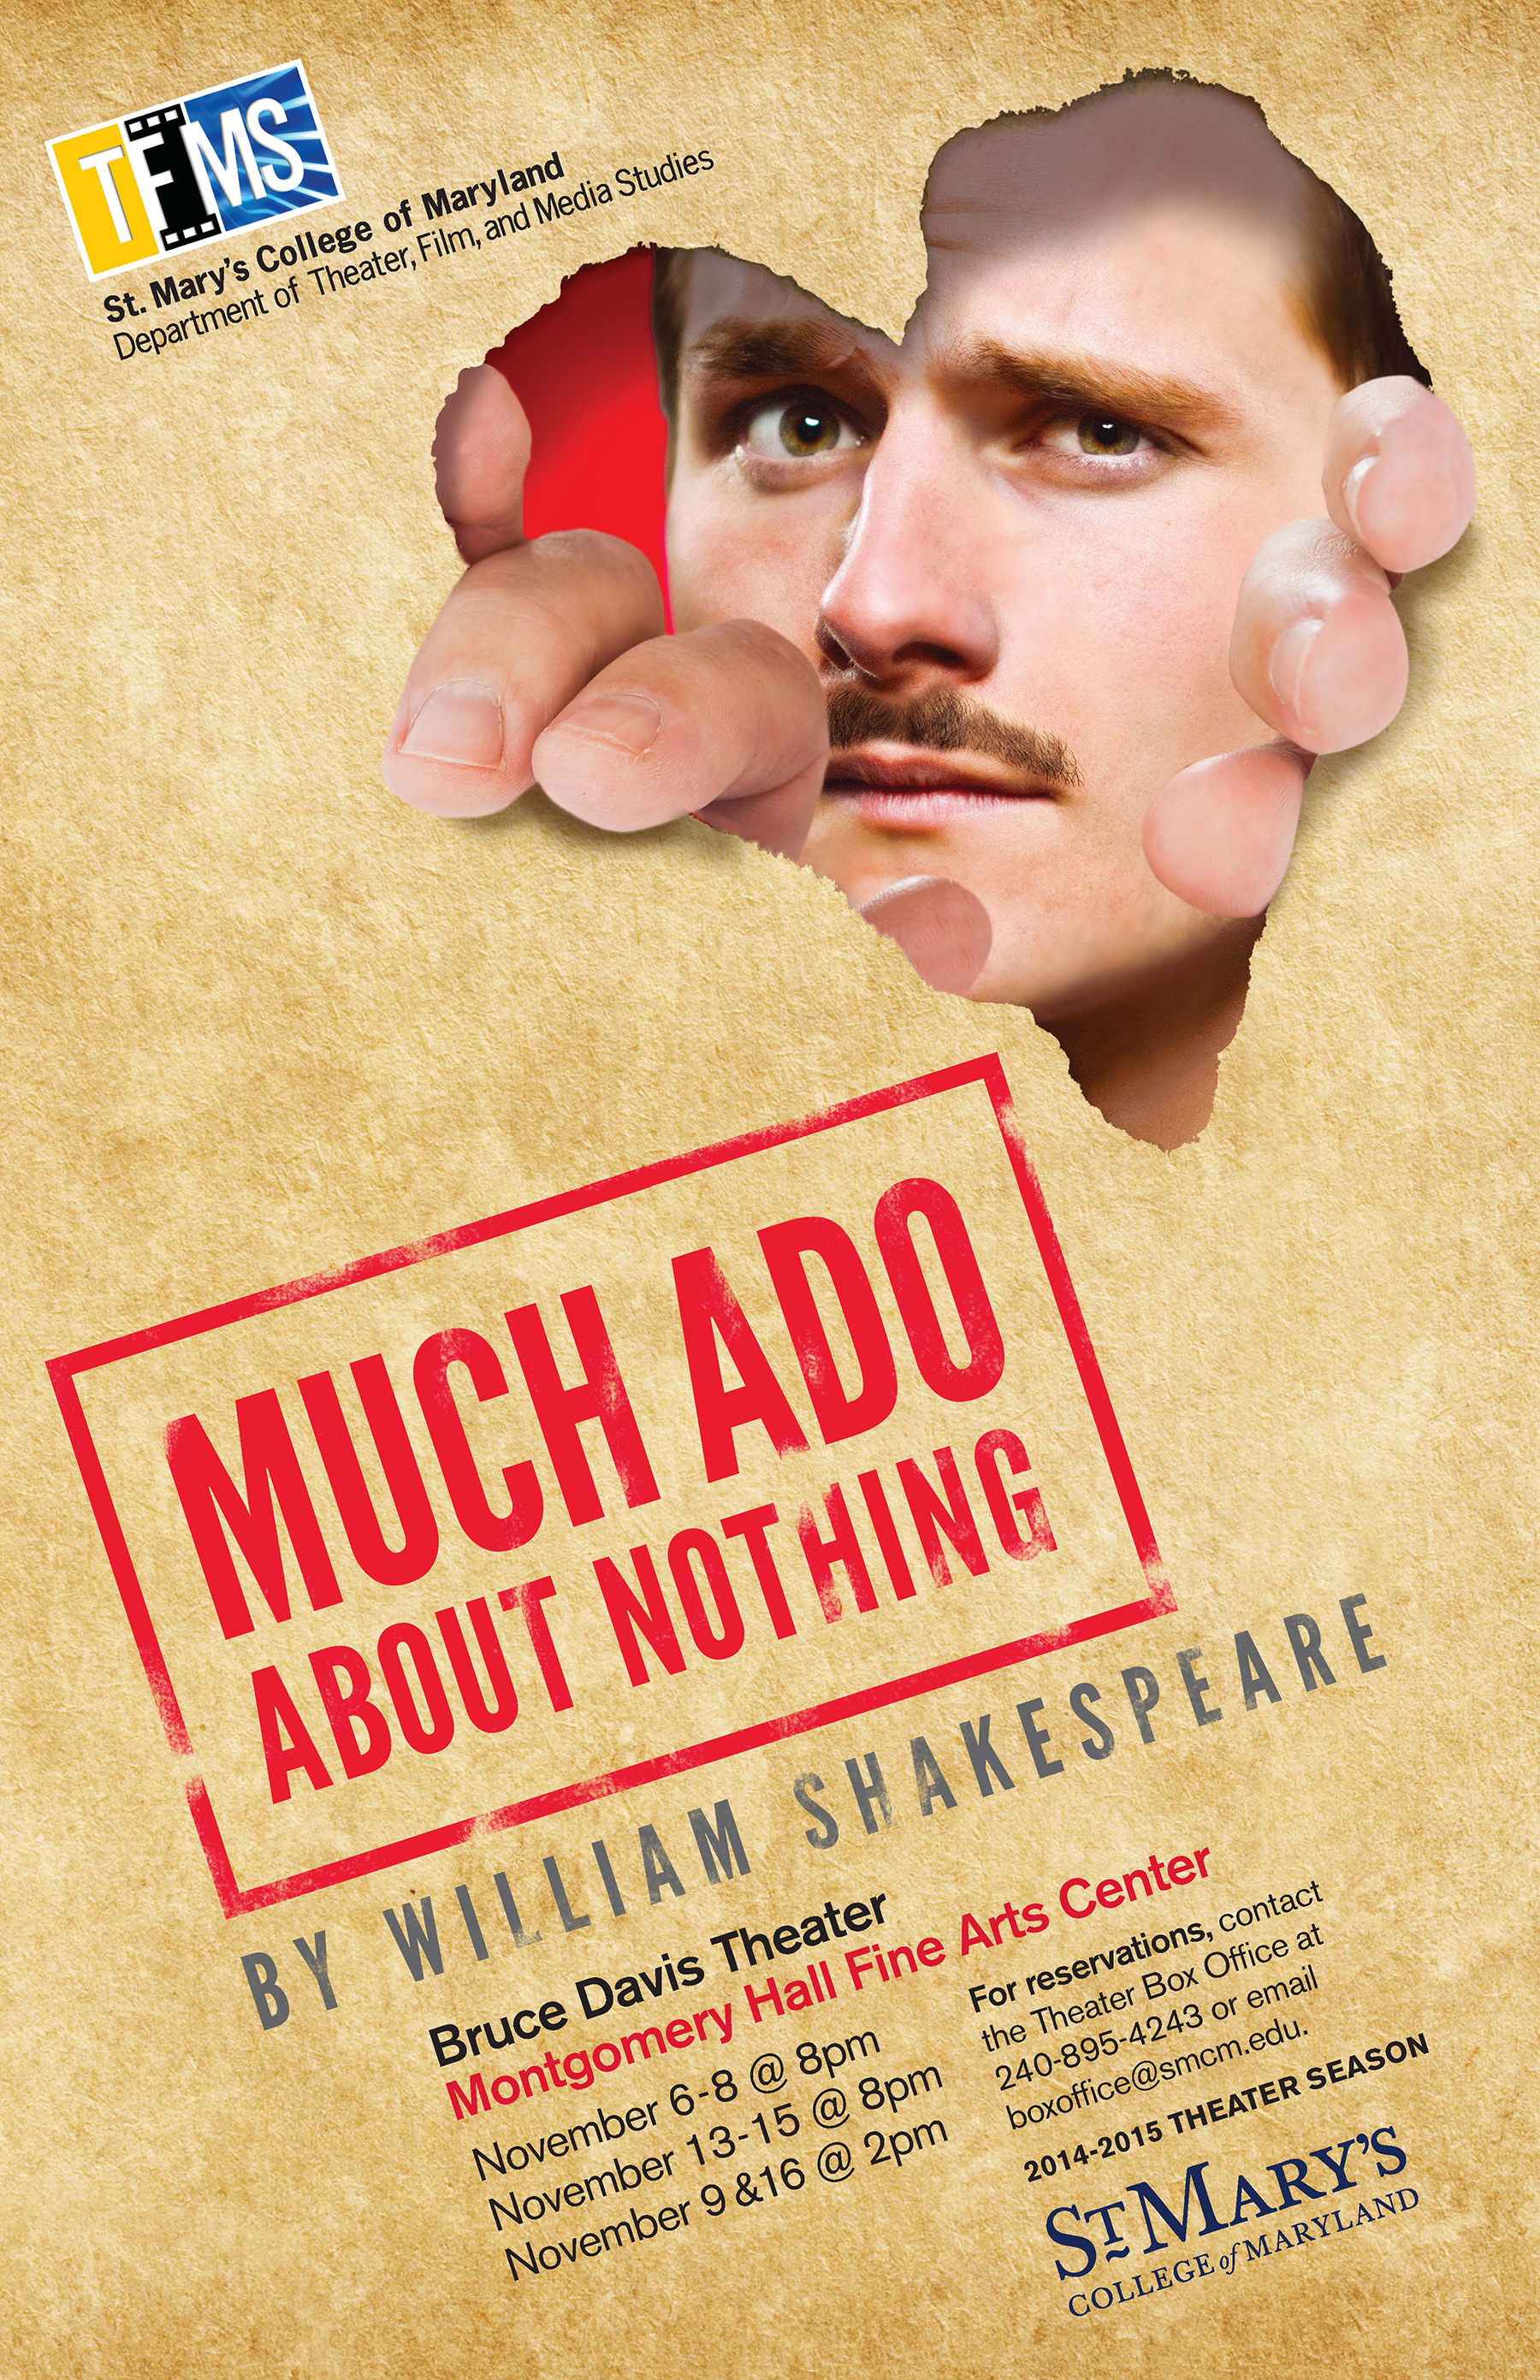 loyalty betrayal much ado about nothing Benedick is almost a match for beatrice as a memorable shakespearean character his apparent misogyny and unwillingness to make a commitment to a woman are almost stereotypes early in the play.